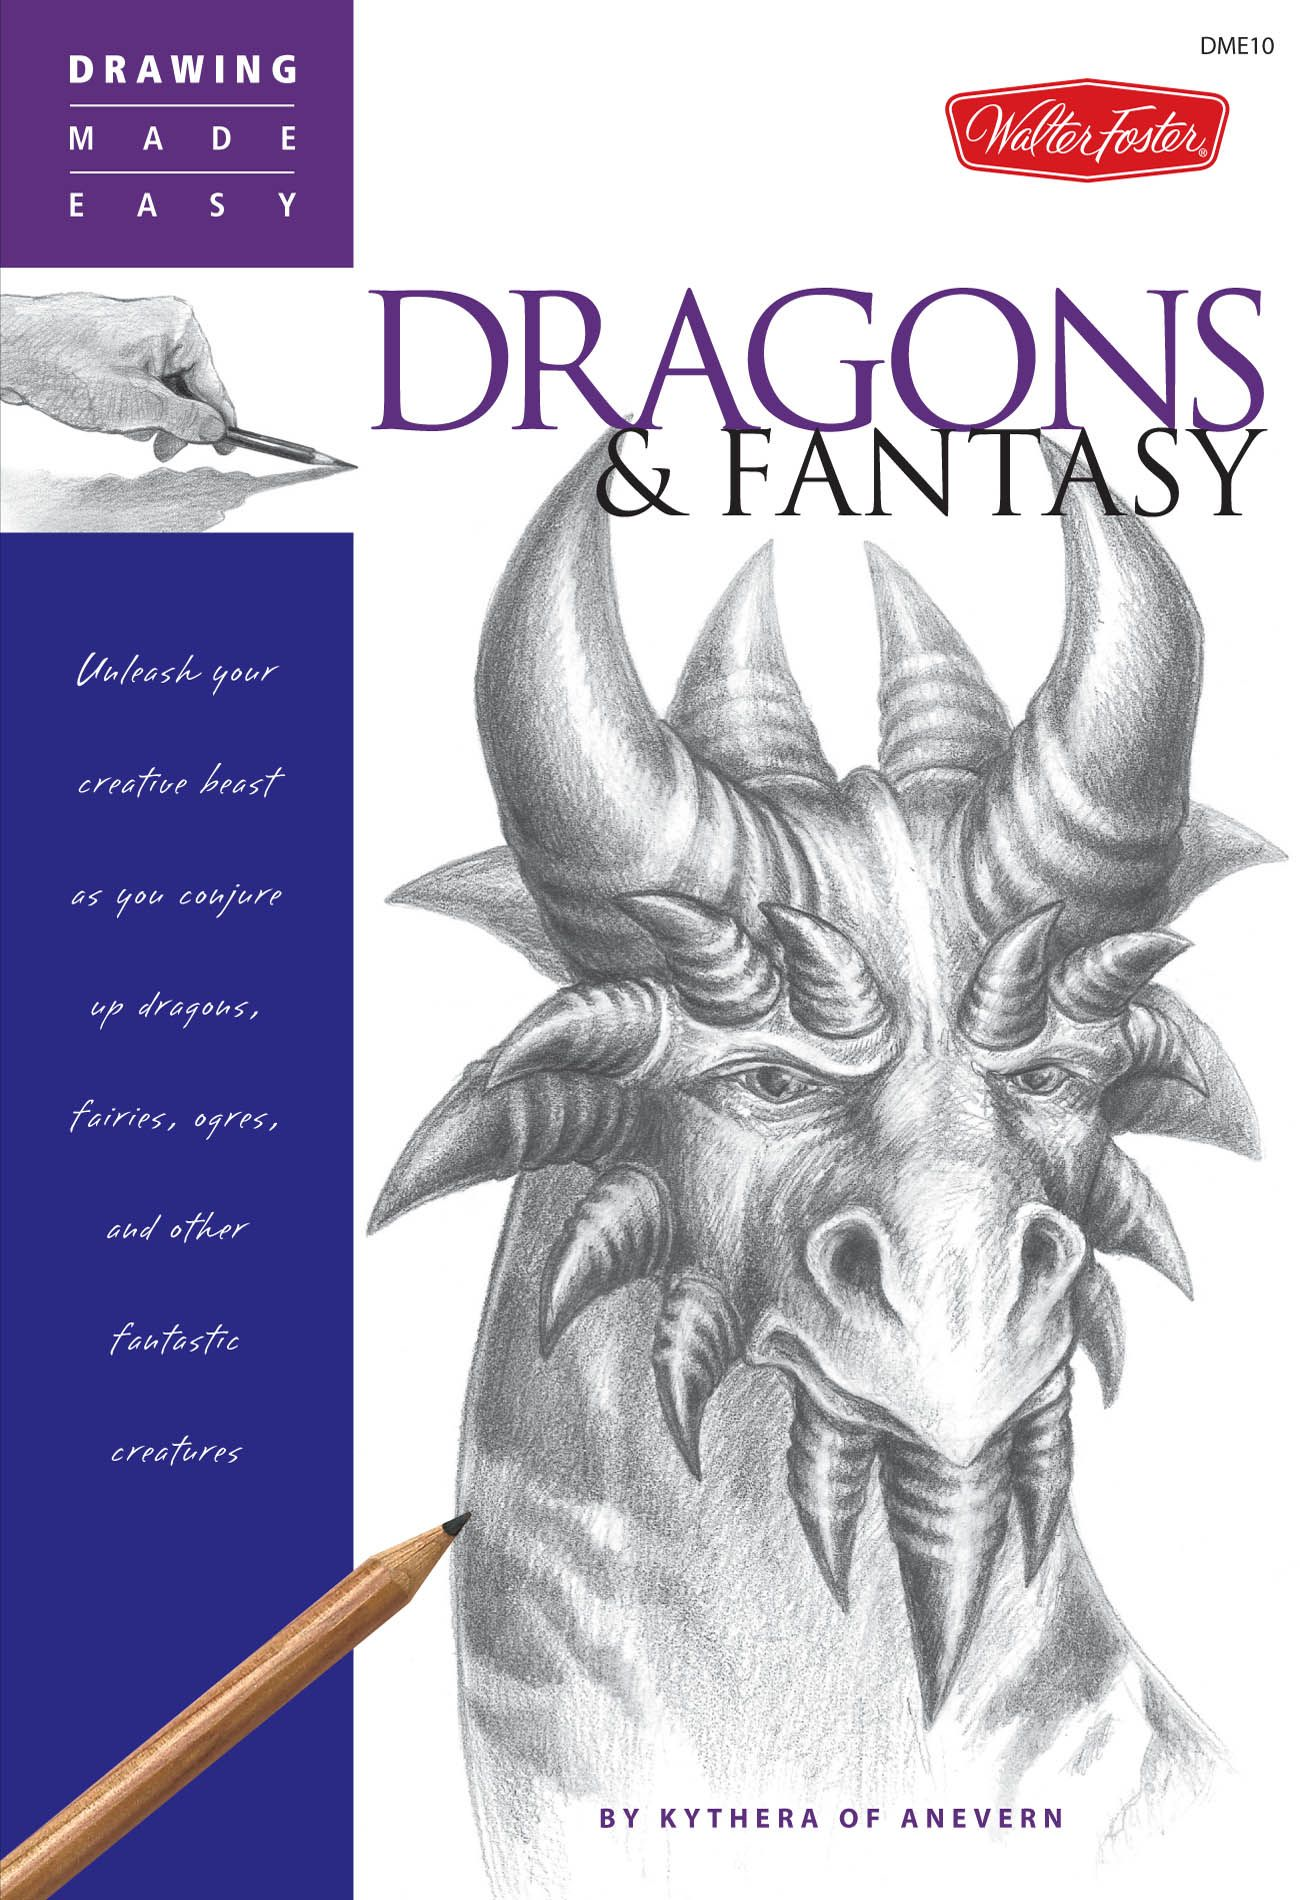 Drawing Made Easy: Dragons & Fantasy: Unleash your creative beast as you conjure up dragons, fairies, ogres, and other fantastic creatures By: Kythera of Anevern